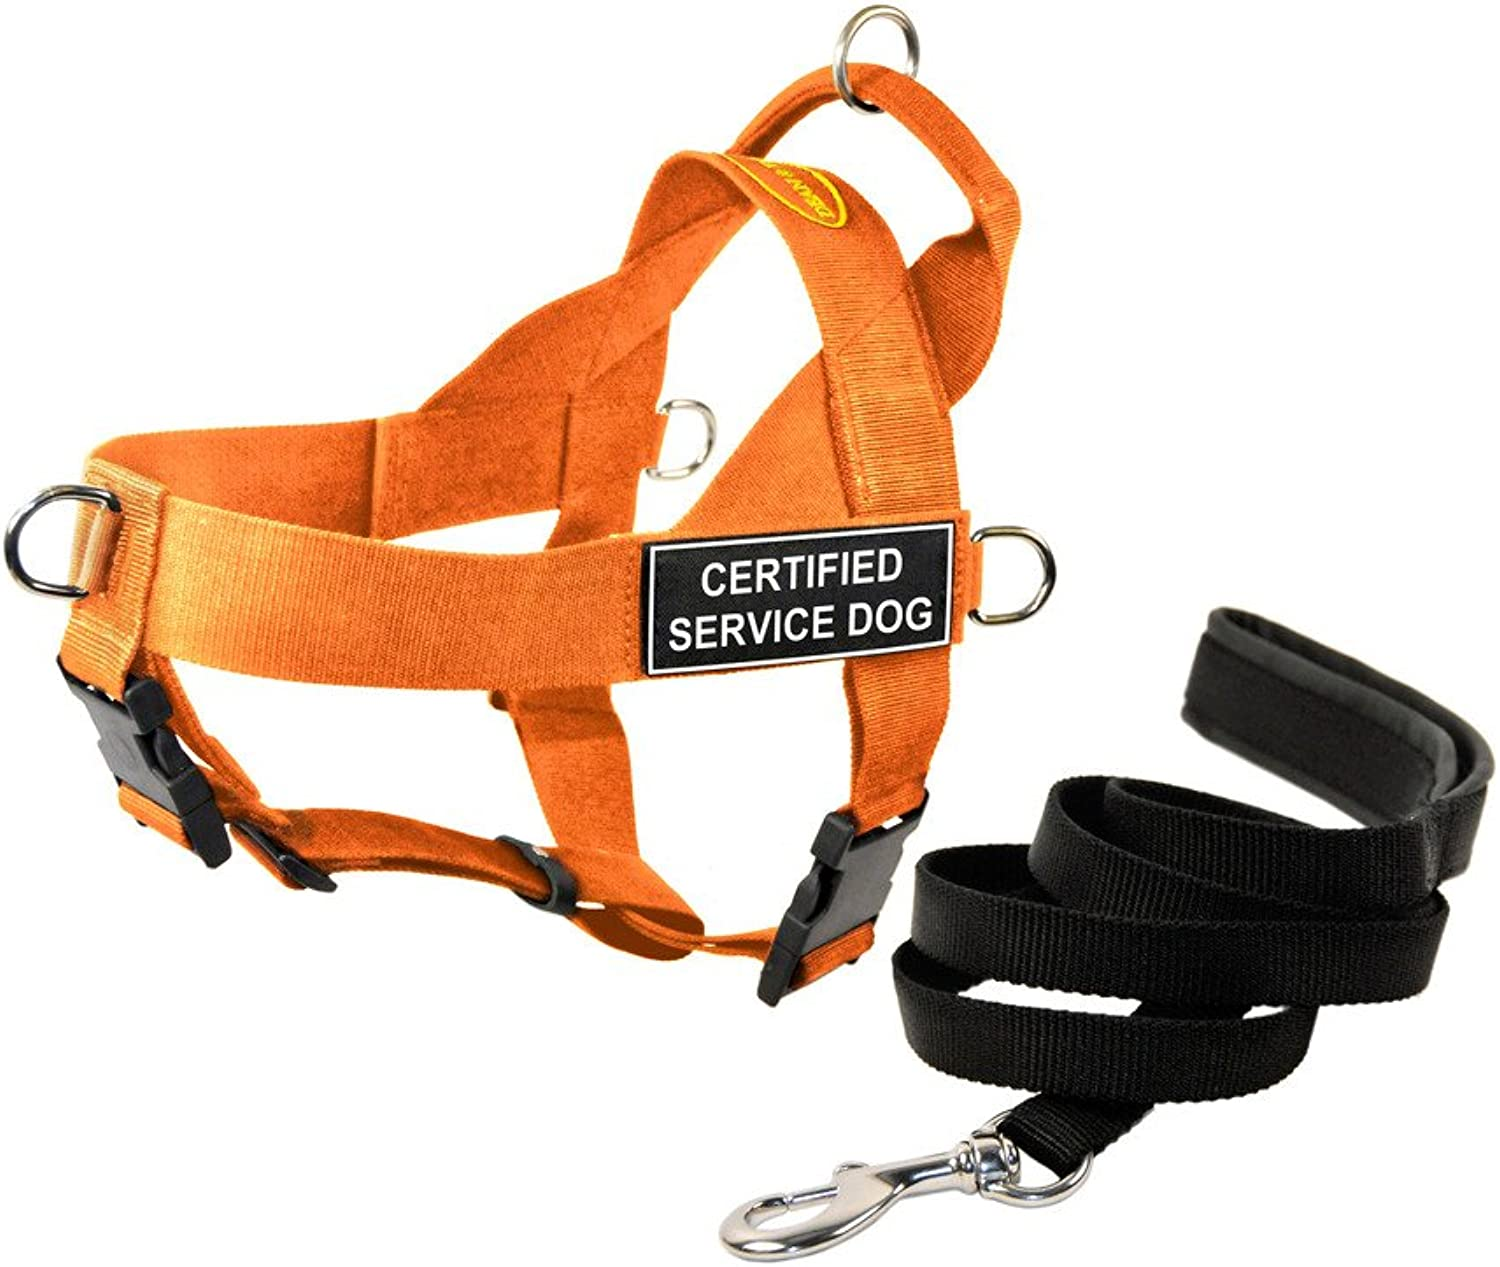 Dean & Tyler DT Universal No Pull Dog Harness with Certified Service Dog Patches and Leash, orange, XLarge